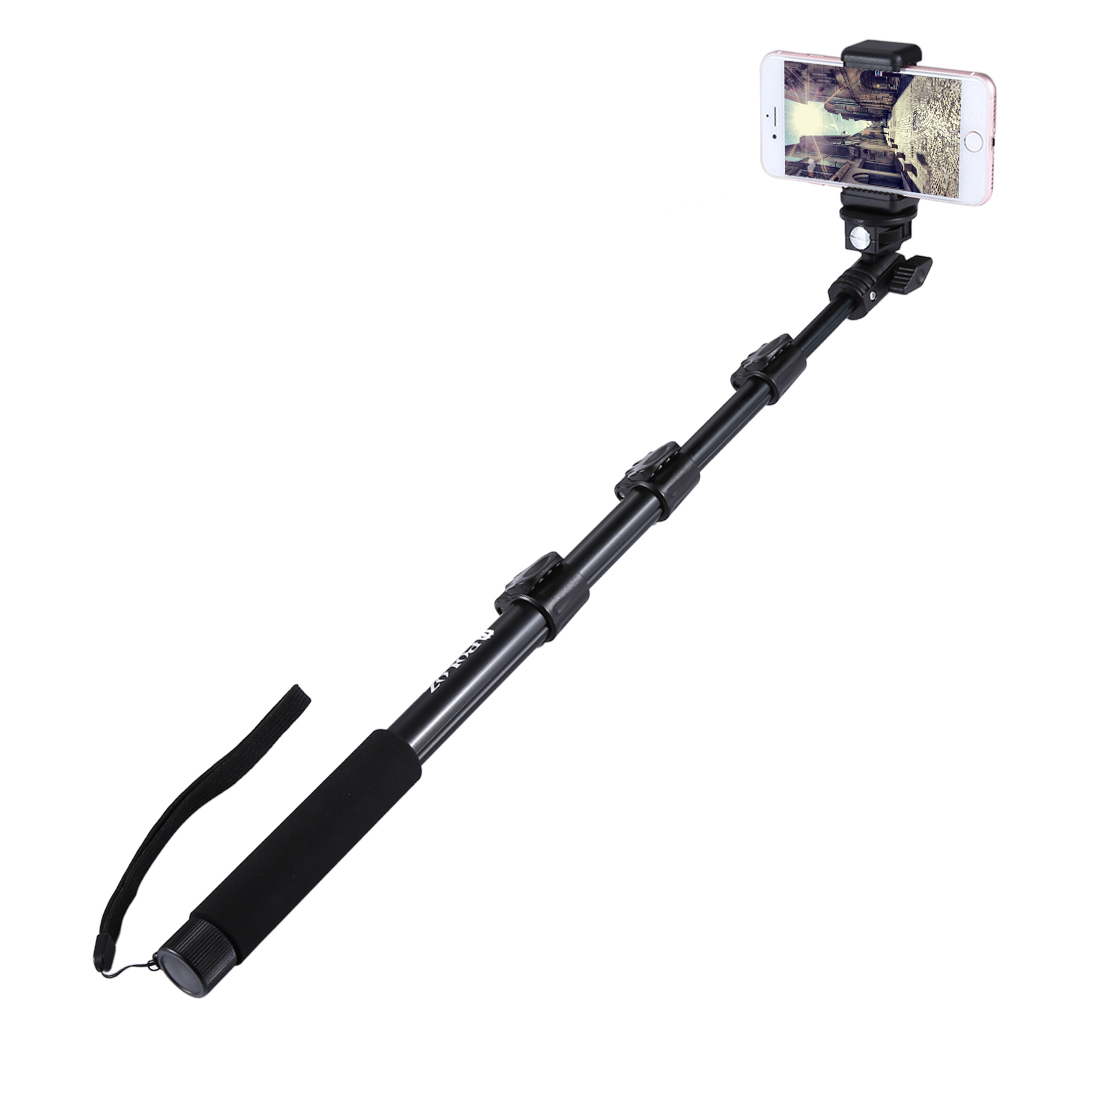 PULUZ Extendable Adjustable Handheld Selfie Stick Monopod for iPhone GoPro HERO 6 5 4 Session Mobile Phone Length: 40 120cm